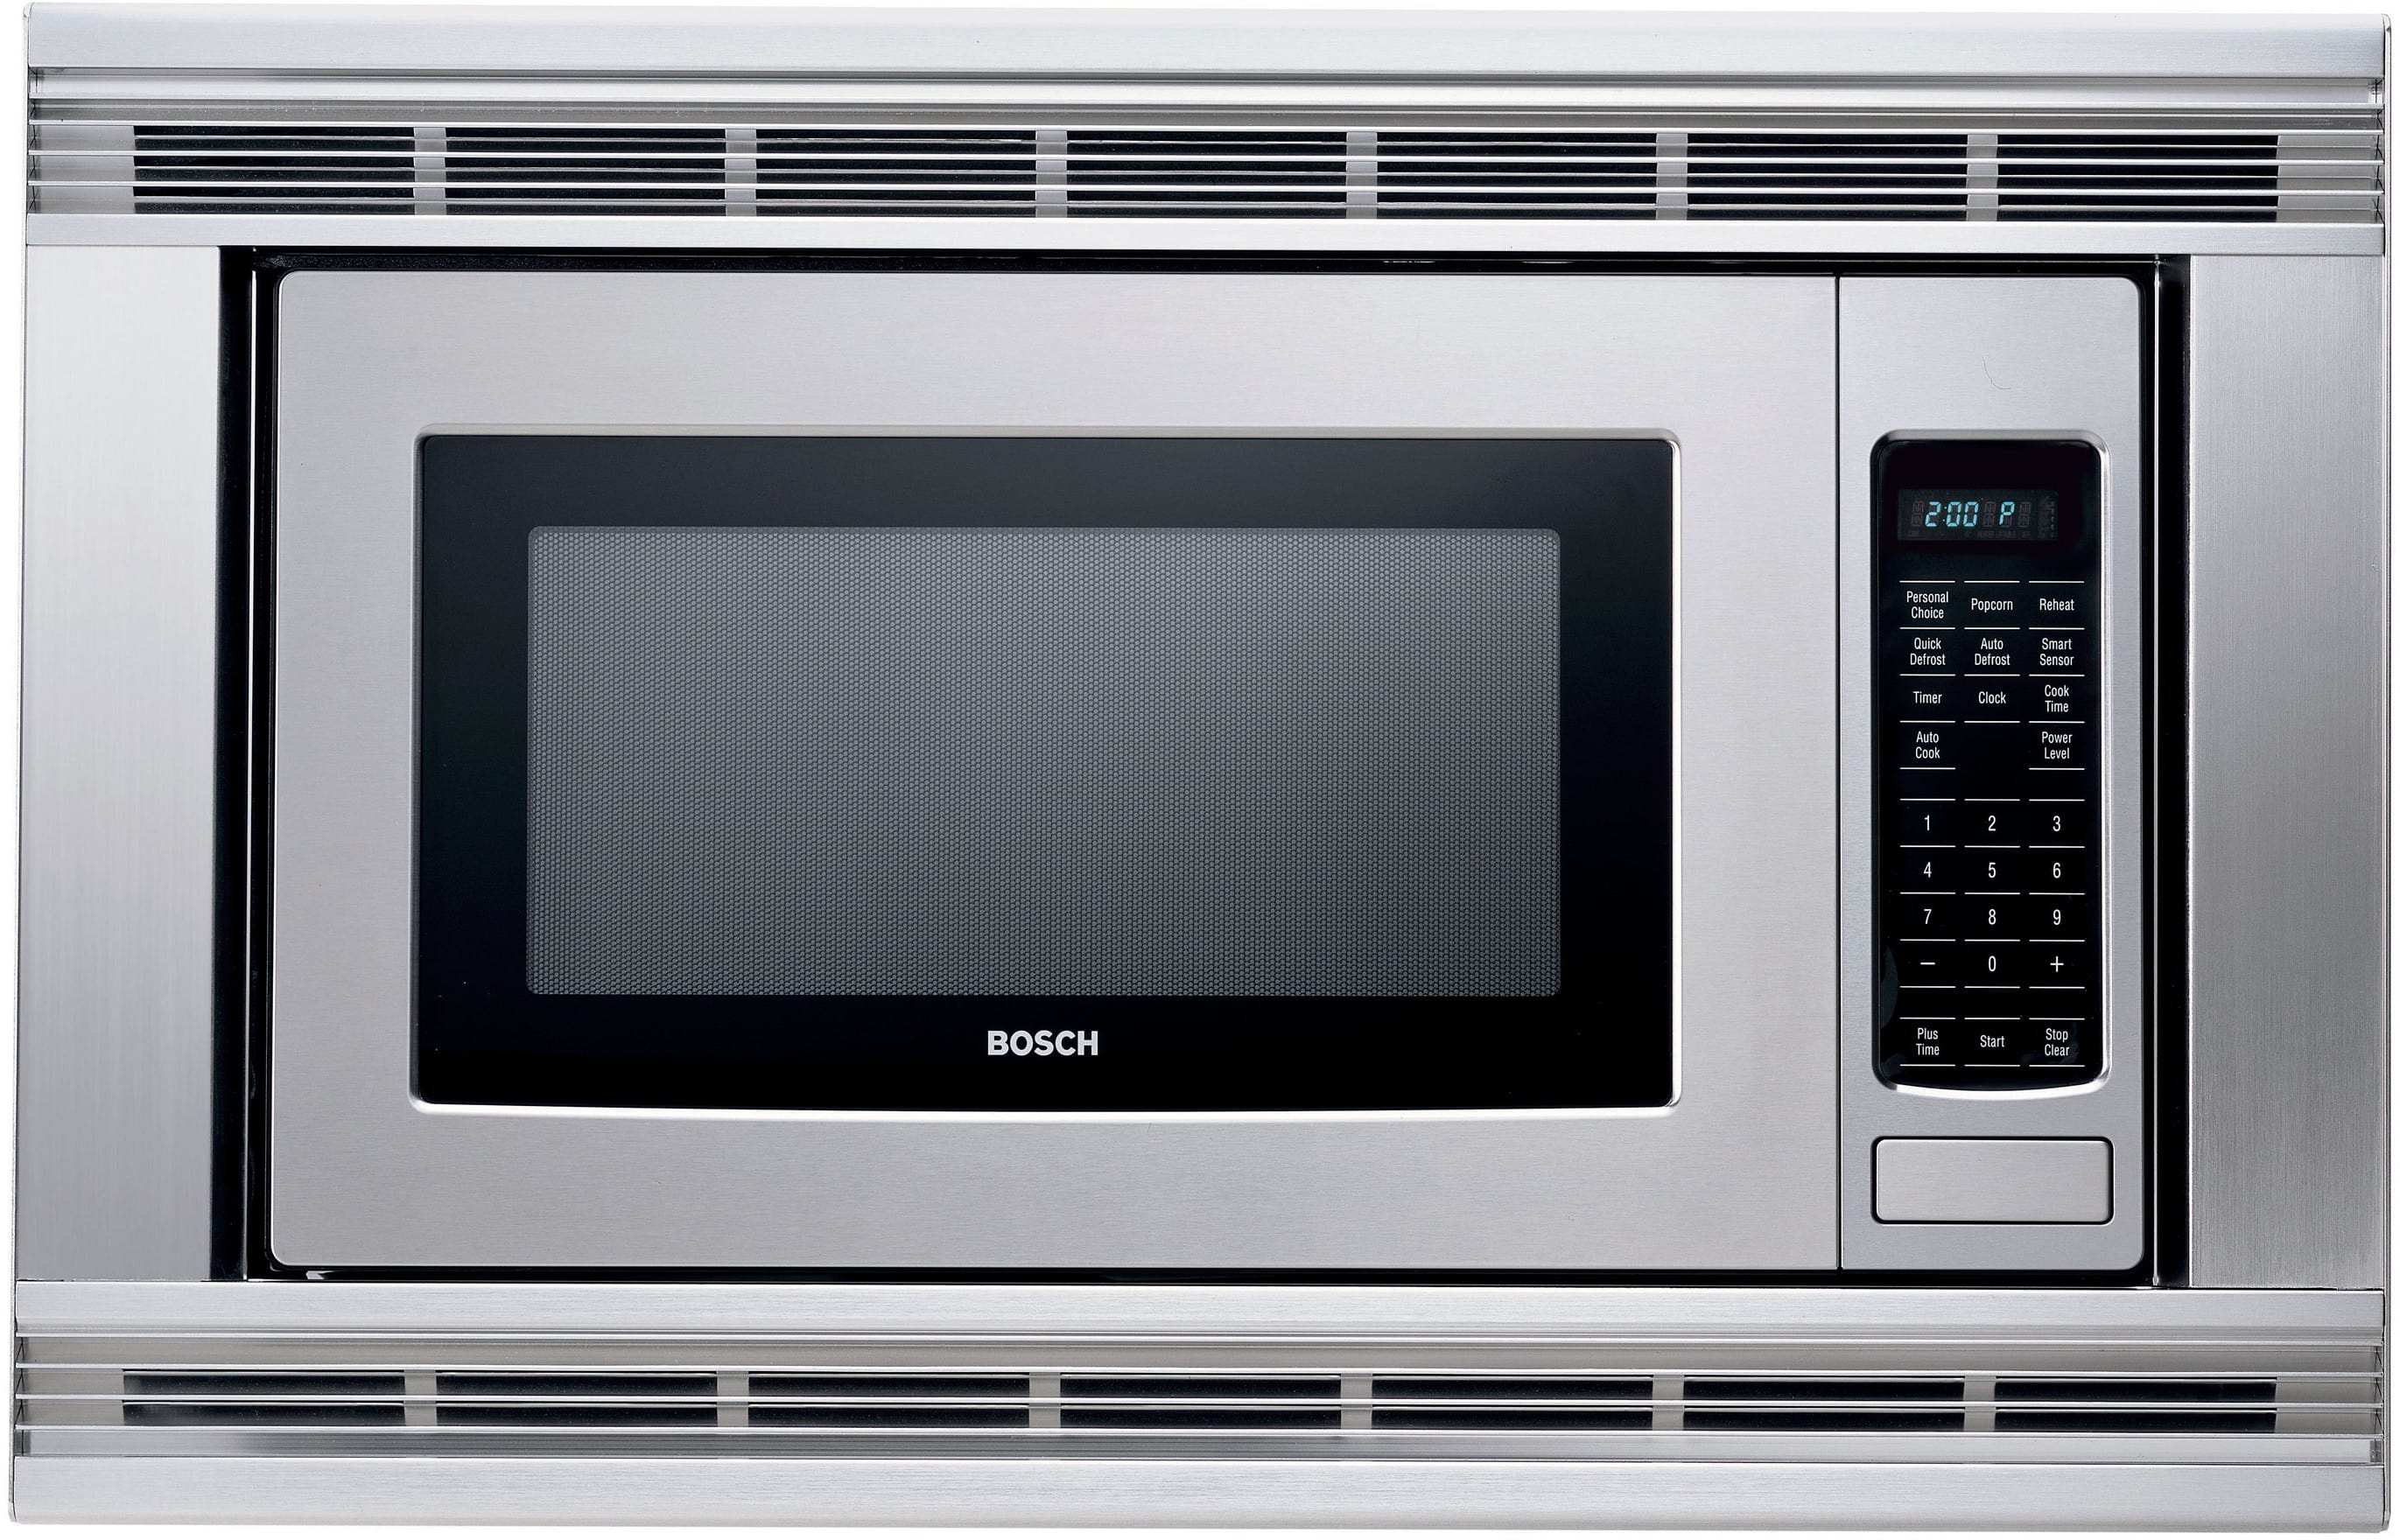 Bosch Hmb405 2 1 Cu Ft Built In Microwave Oven With